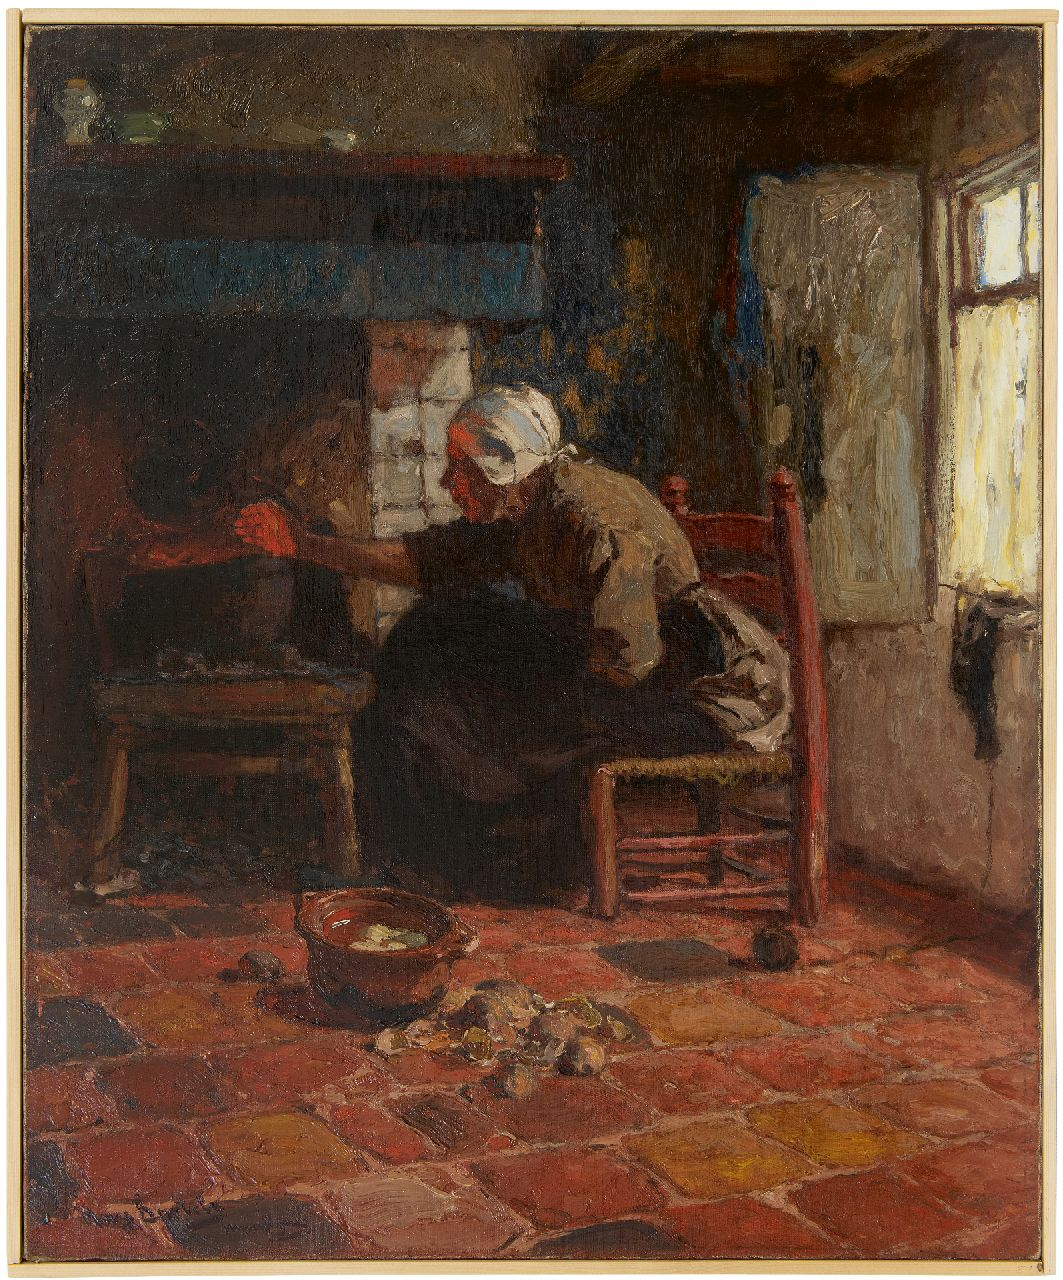 Bartels H. von | Hans von Bartels | Paintings offered for sale | A woman from Katwijk near the fire, oil on canvas 67.3 x 55.0 cm, signed l.l.